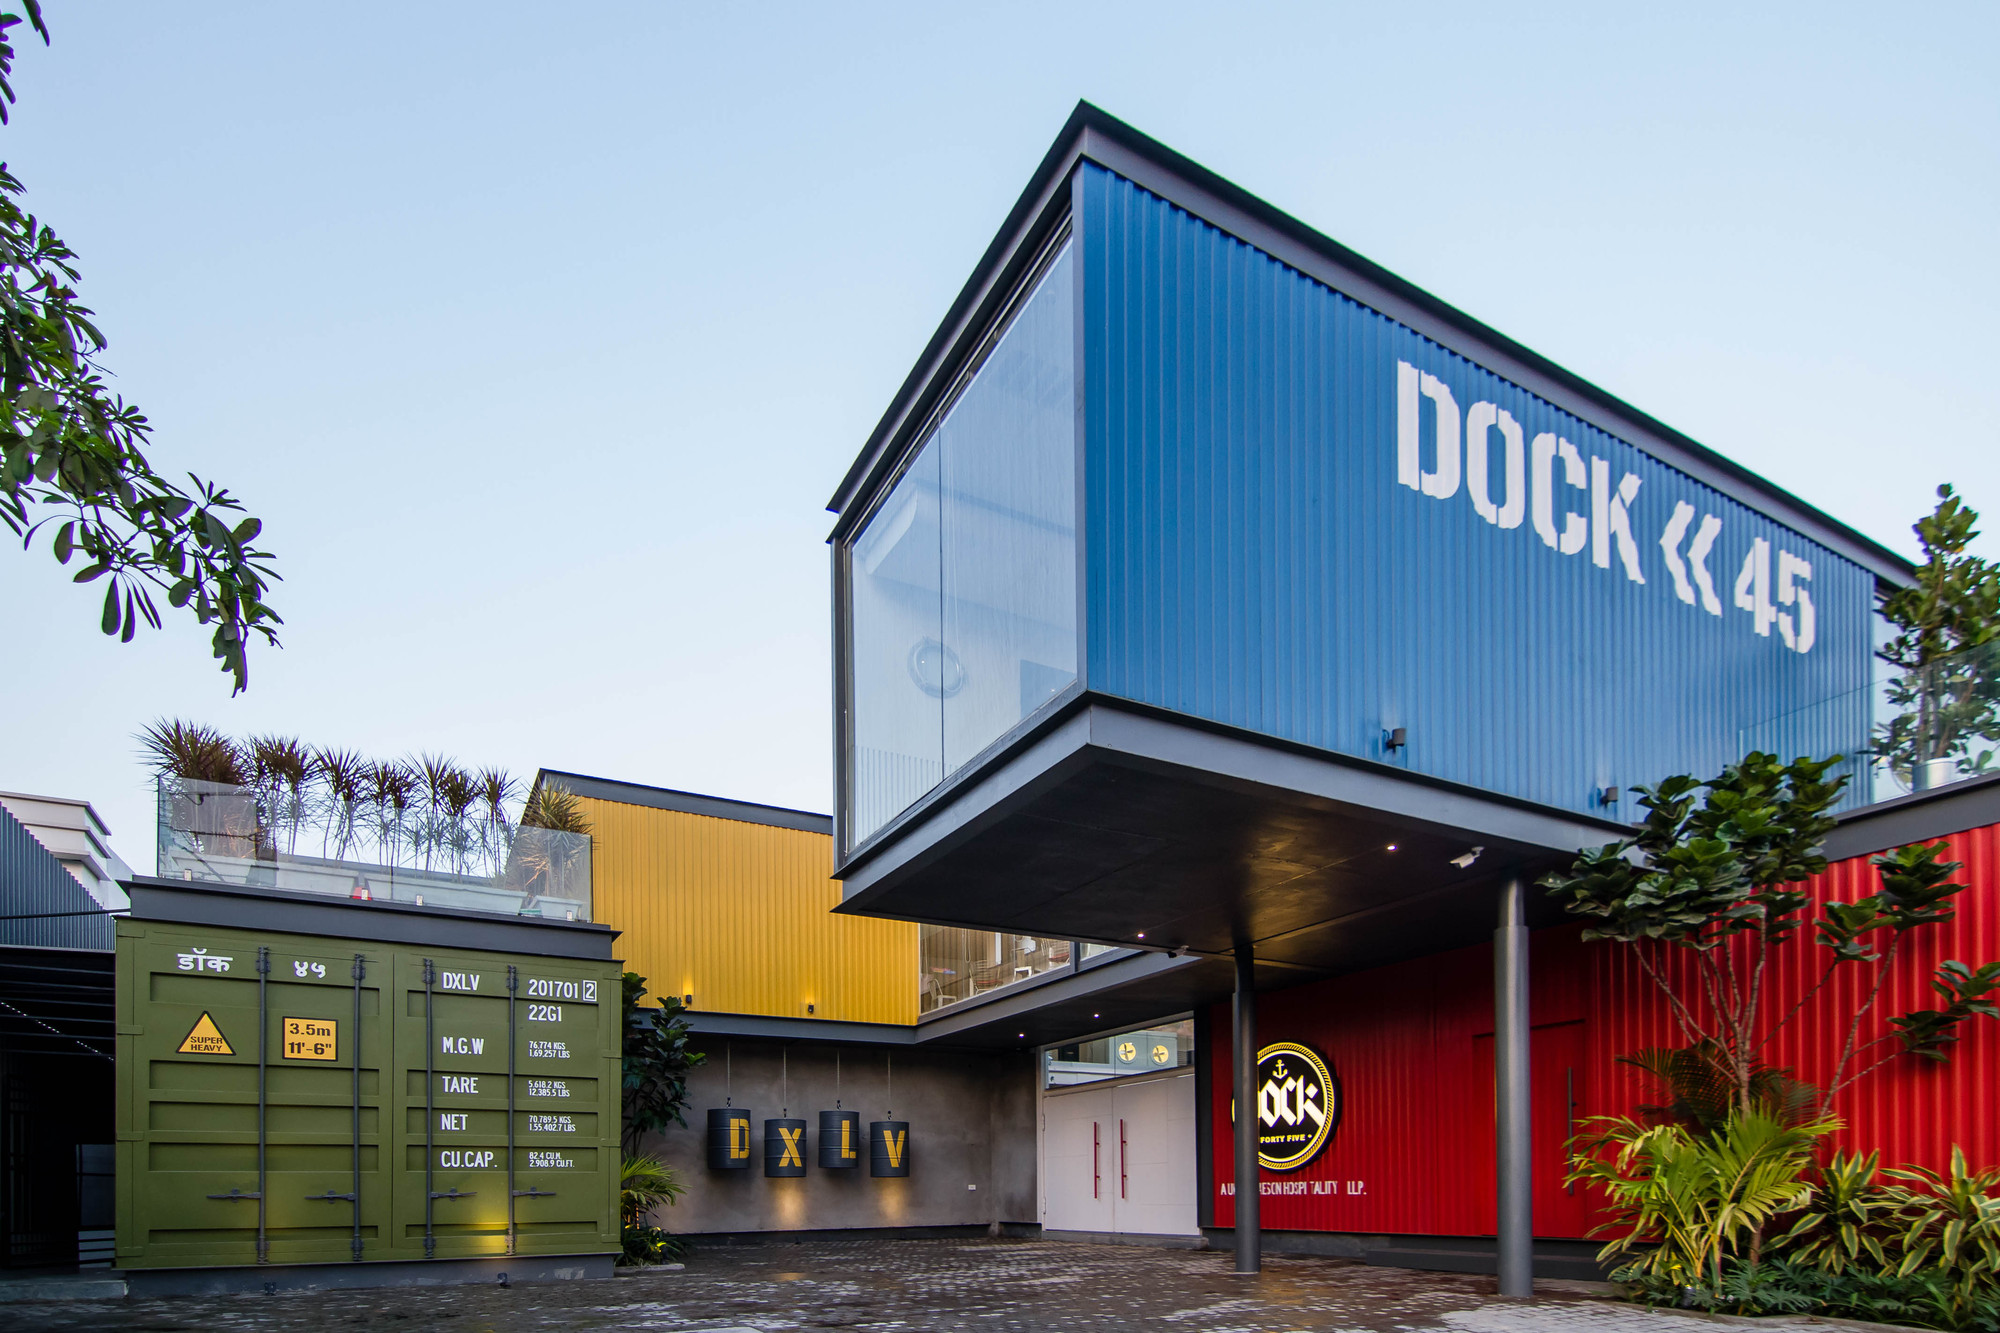 Dock 45 Spacefiction Studio Archdaily